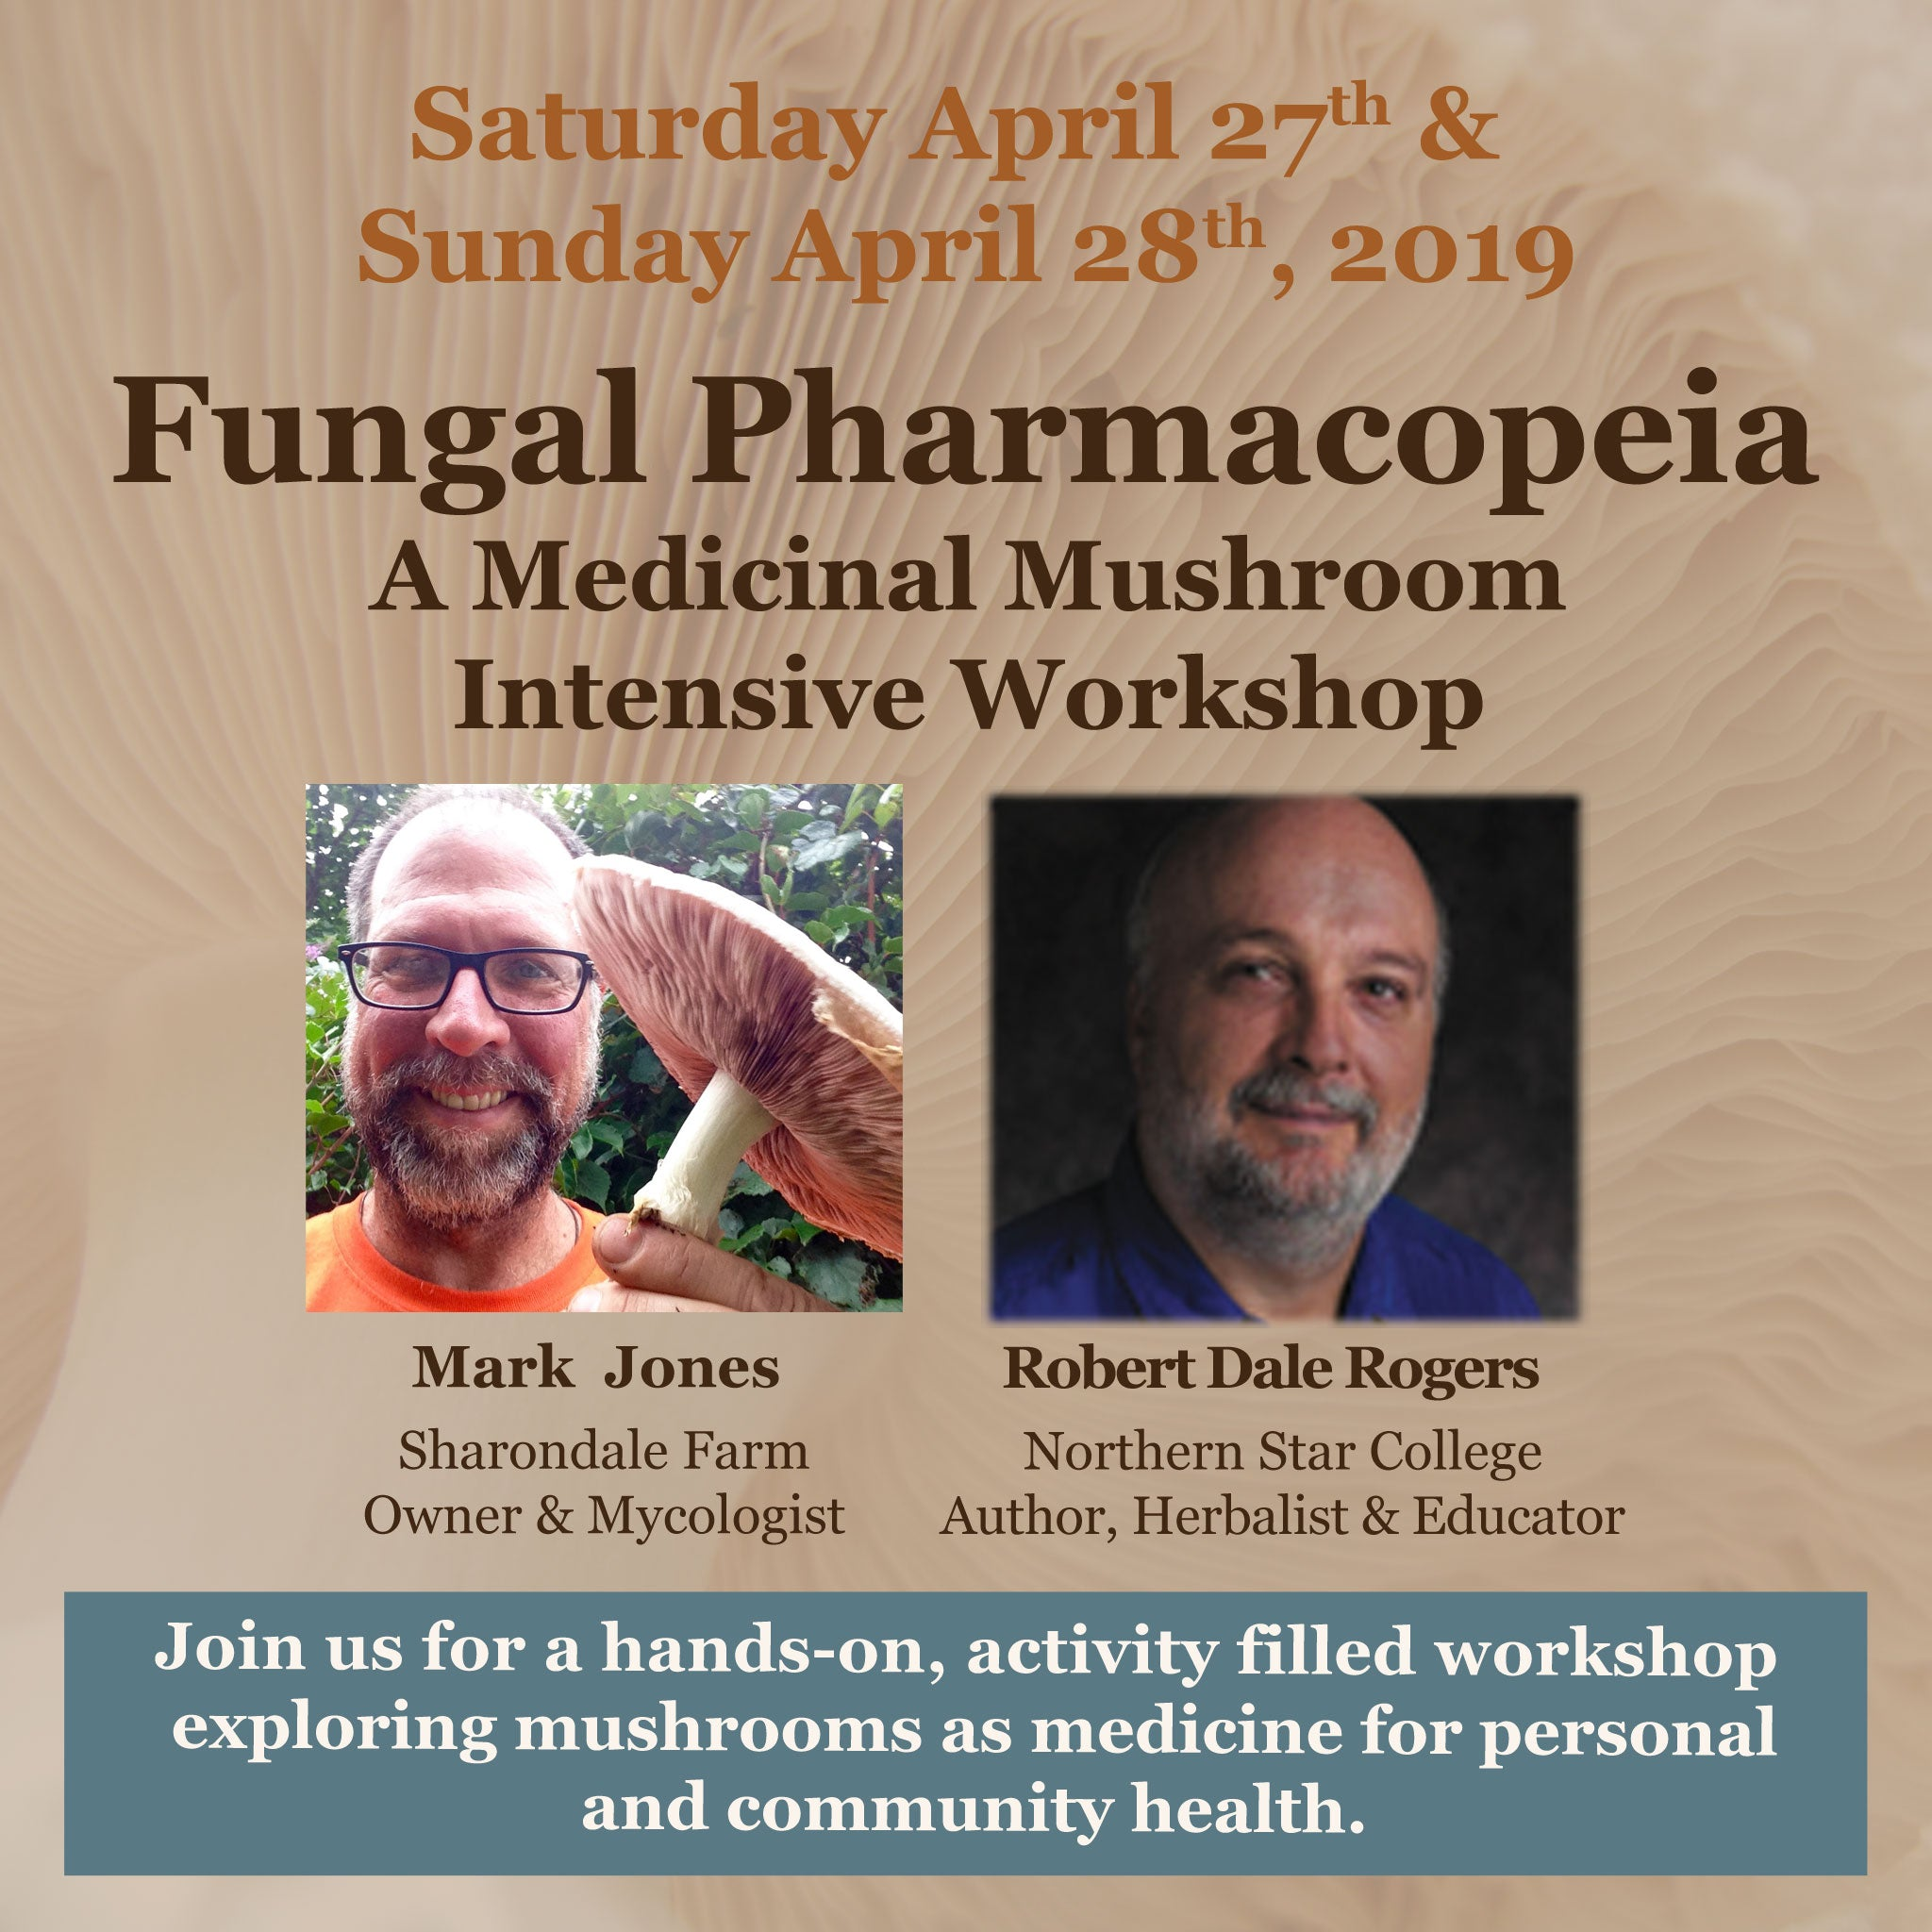 Fungal Pharmacopeia: A Medicinal Mushroom Intensive Workshop